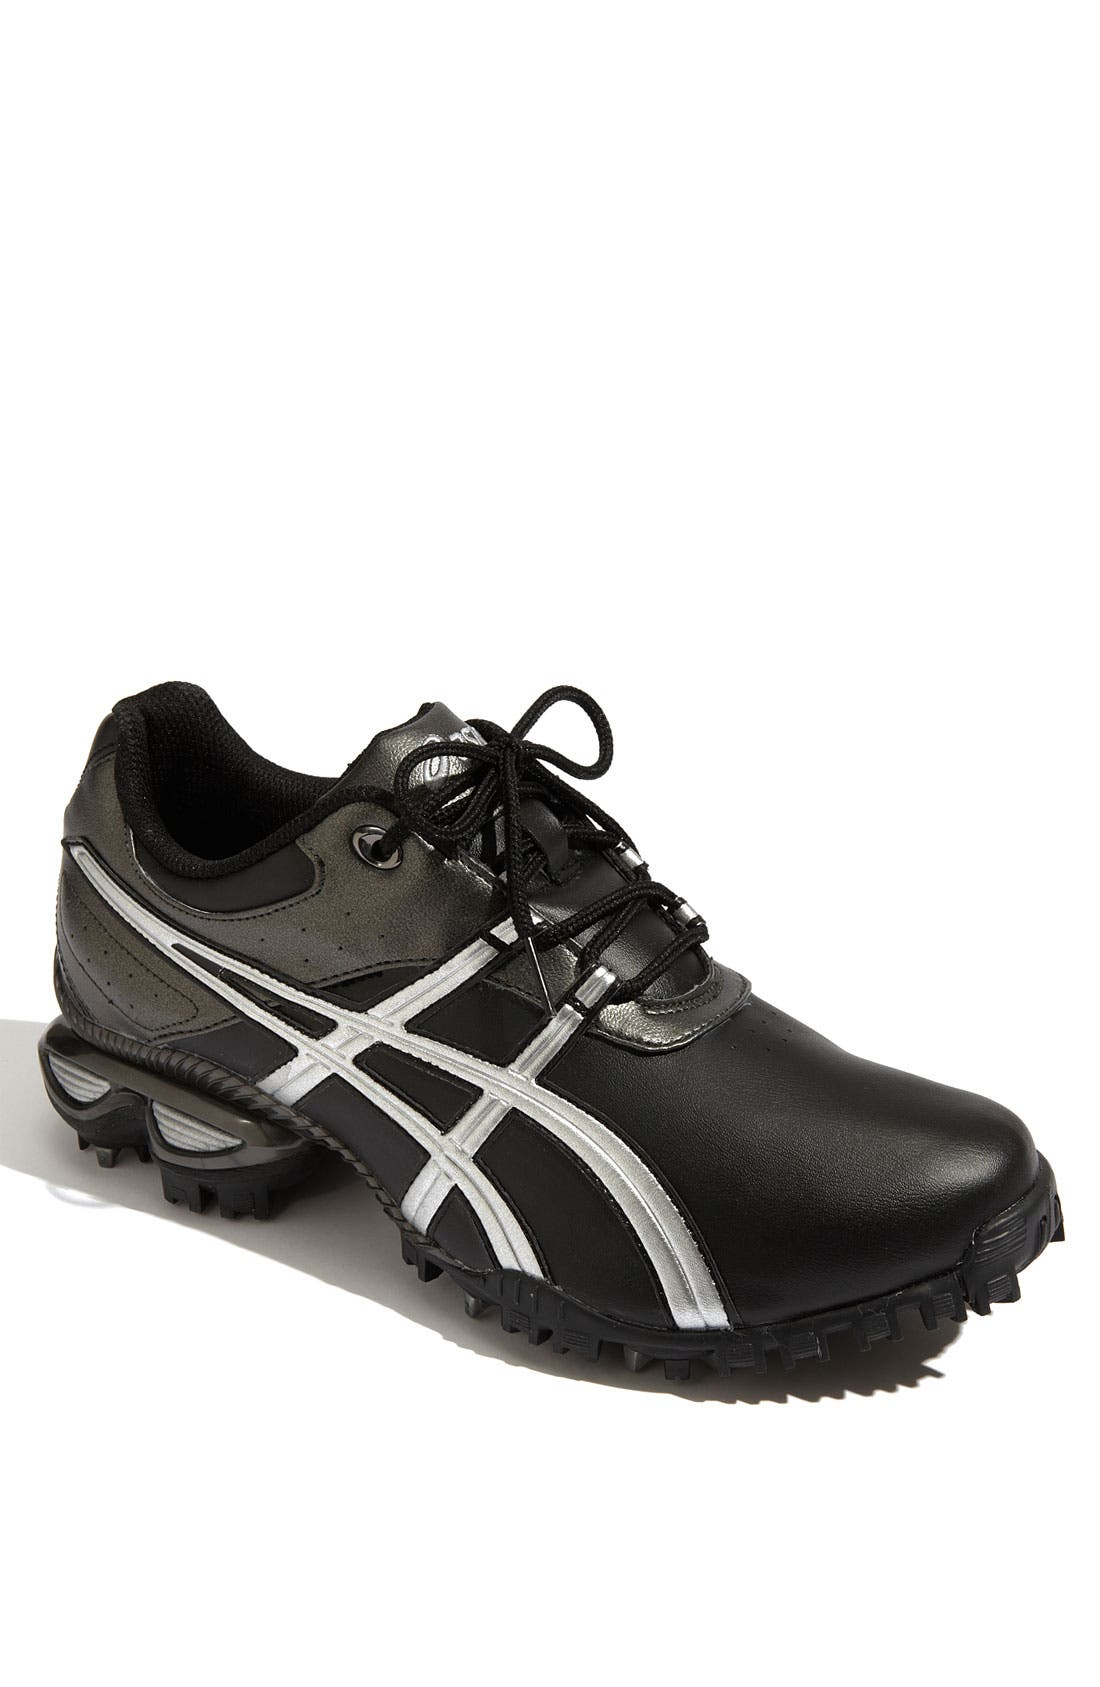 Alternate Image 1 Selected - ASICS® 'GEL-Linksmaster™' Golf Shoe (Men)